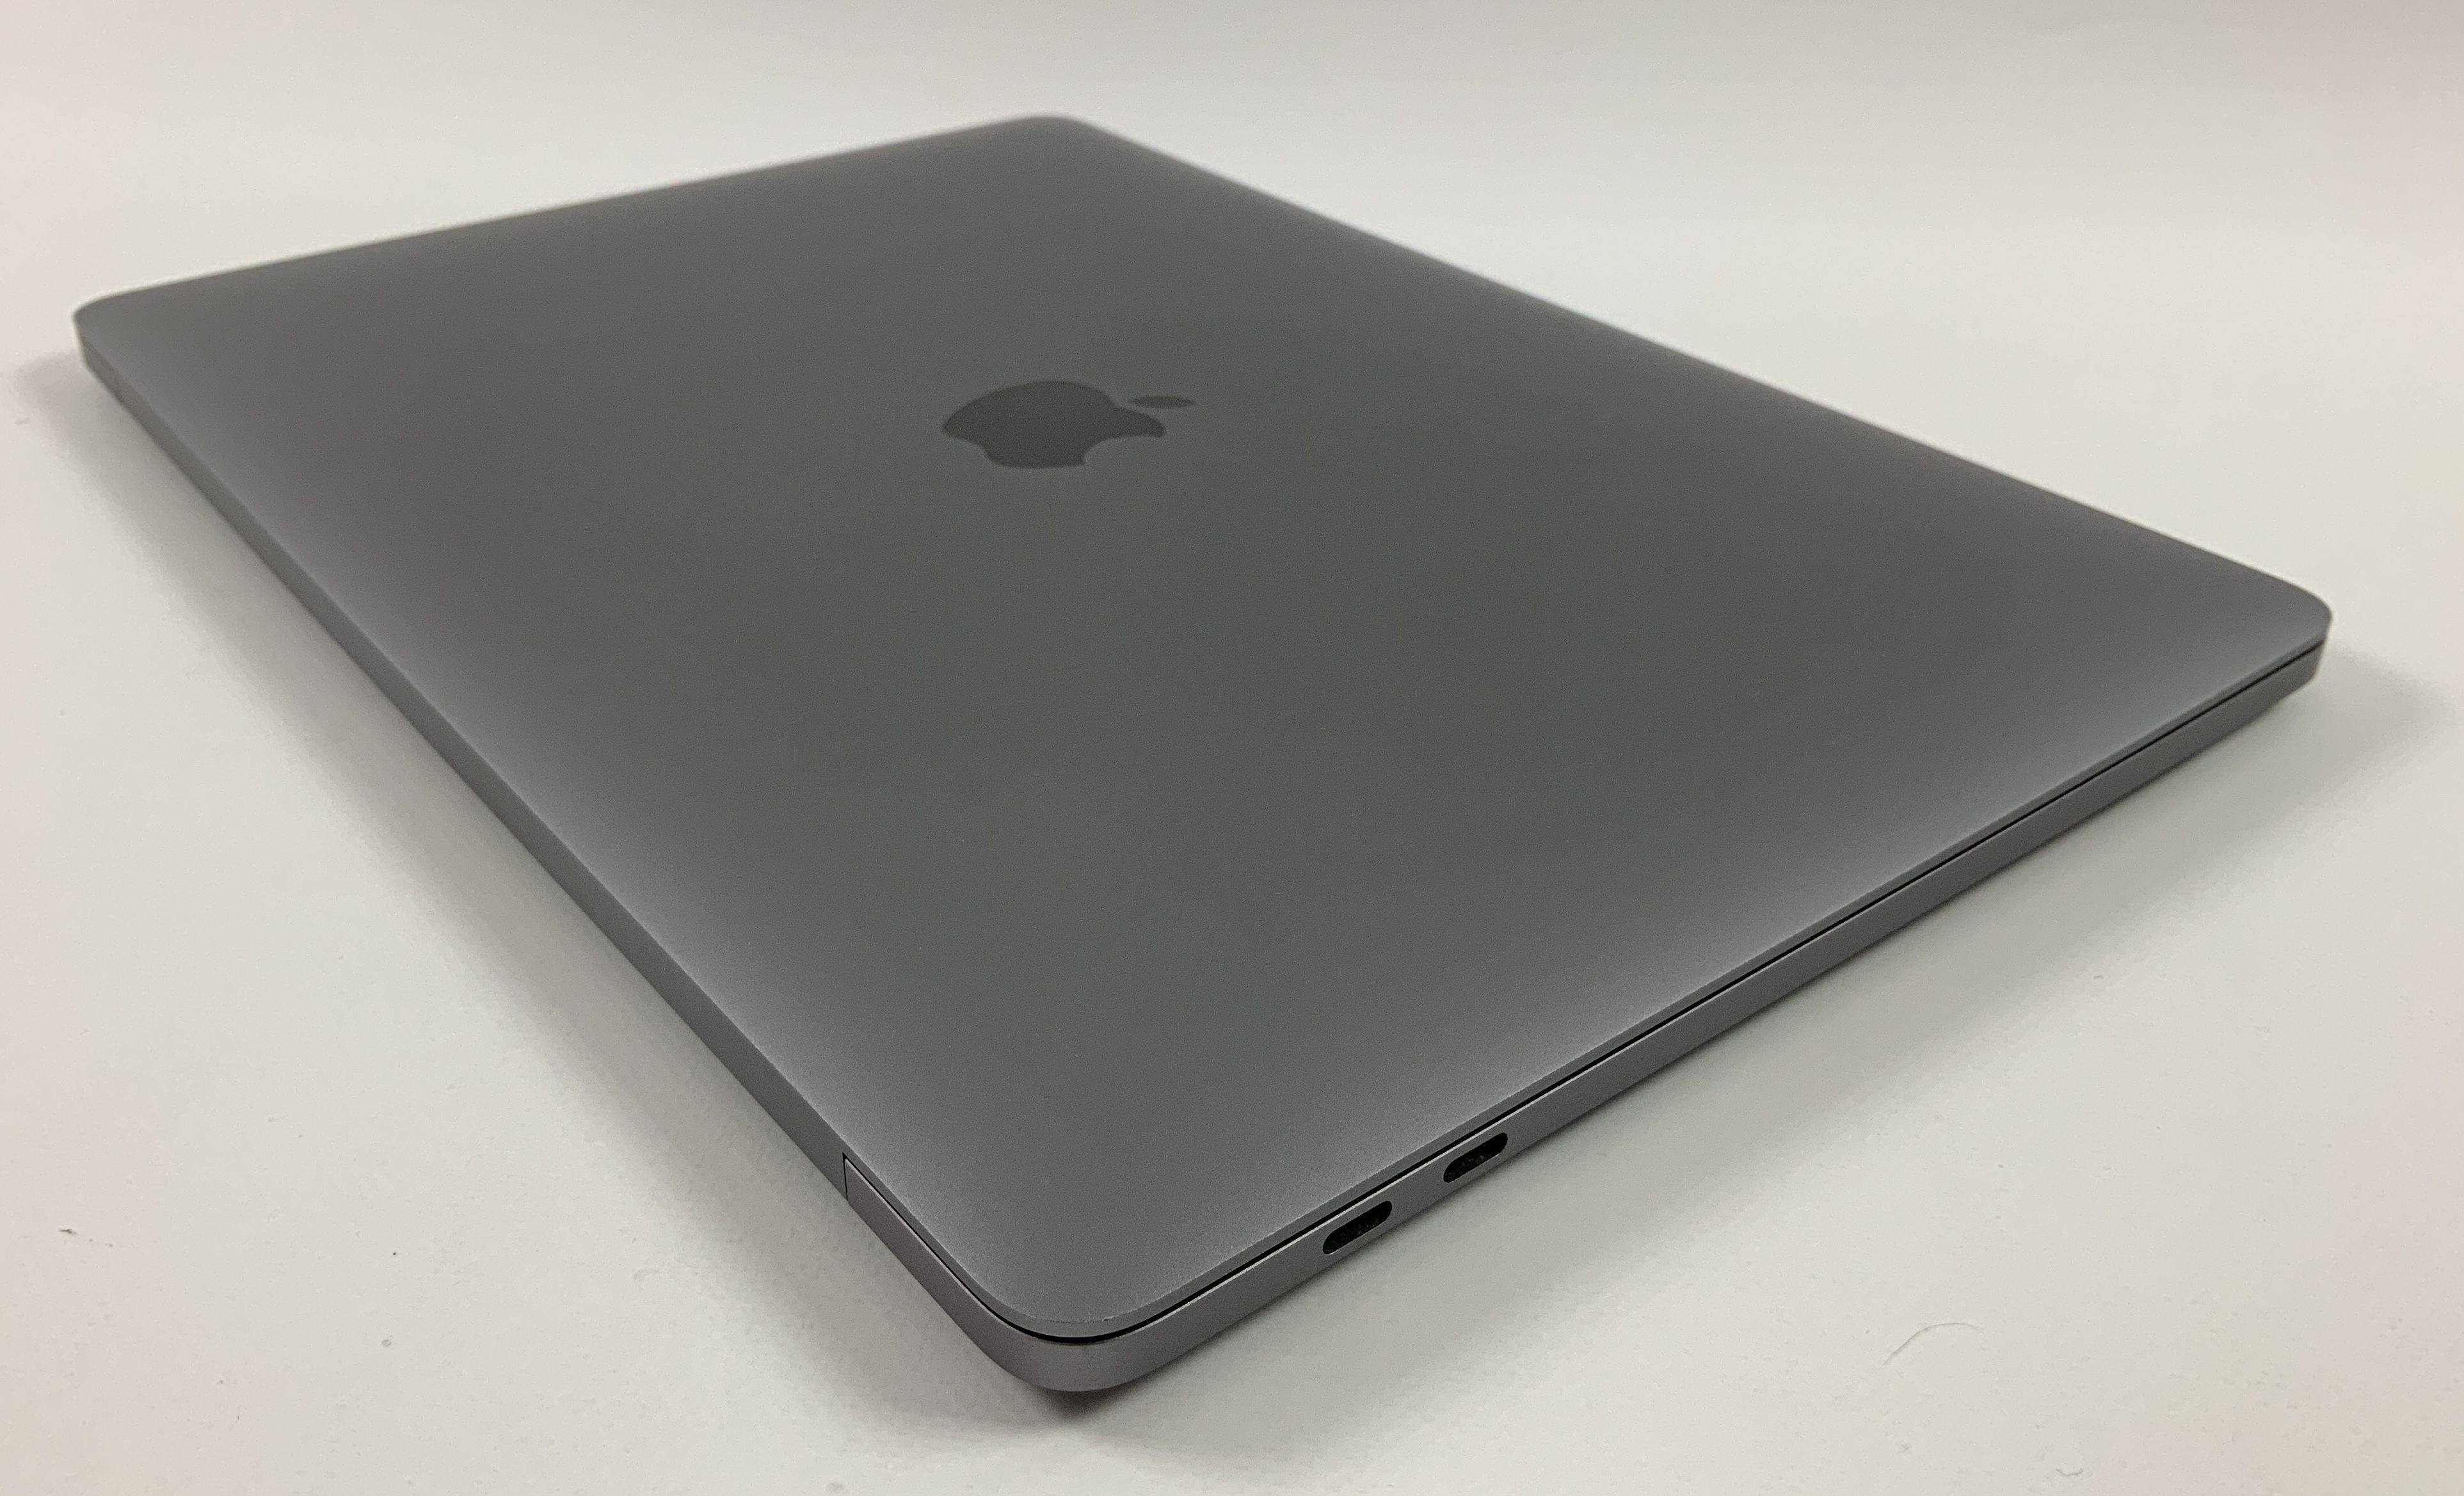 "MacBook Pro 13"" 4TBT Mid 2017 (Intel Core i5 3.1 GHz 8 GB RAM 256 GB SSD), Space Gray, Intel Core i5 3.1 GHz, 8 GB RAM, 256 GB SSD, imagen 3"